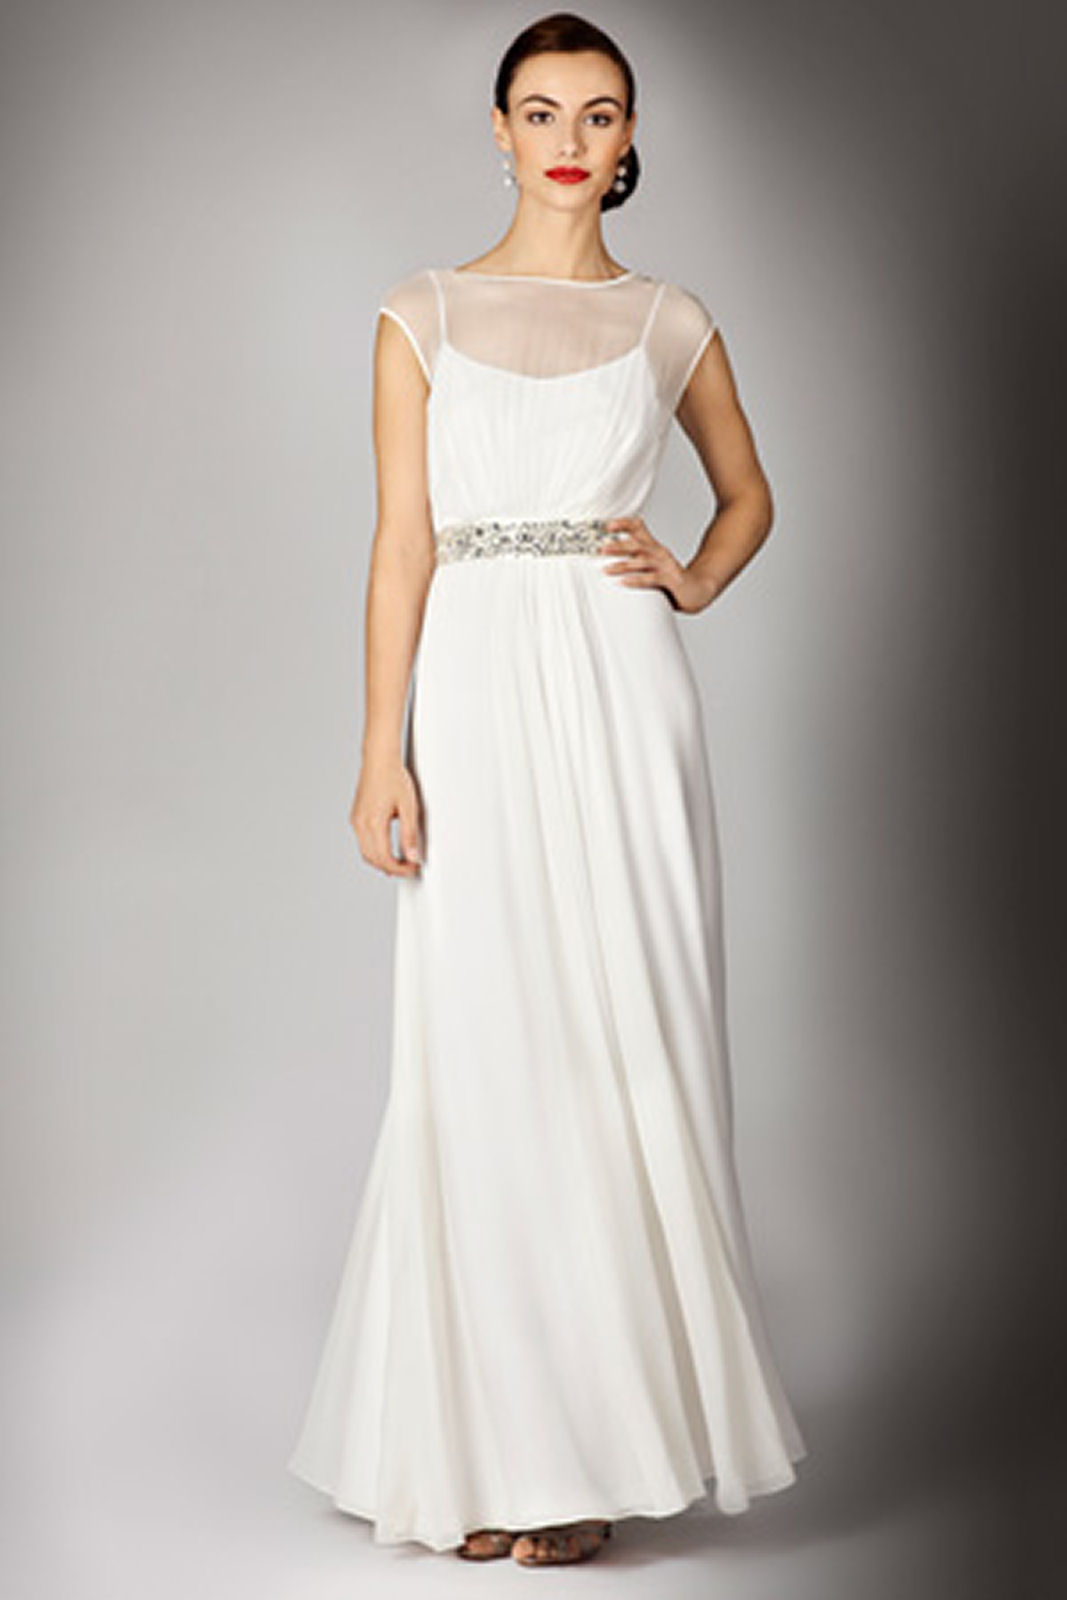 coast wedding dresses helena maxi dress IRPRMFE